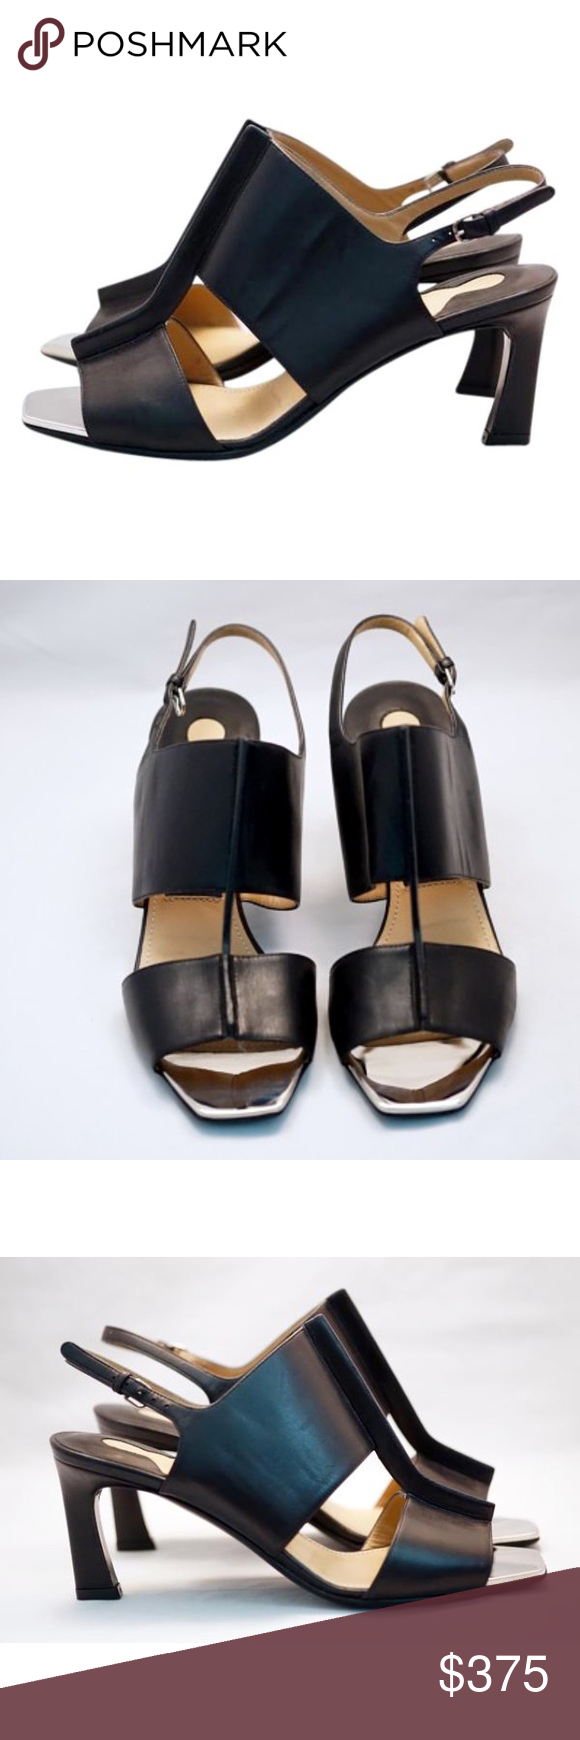 Salvatore Ferragamo Leather Pamelia T-Bar pumps 100% autentic Salvatore Ferragamo T-Bar Sandals Black Pumps || brand new never worn || size US 5.5 || non ori box and cleaning cloth included || msrp $750 Salvatore Ferragamo Shoes Heels